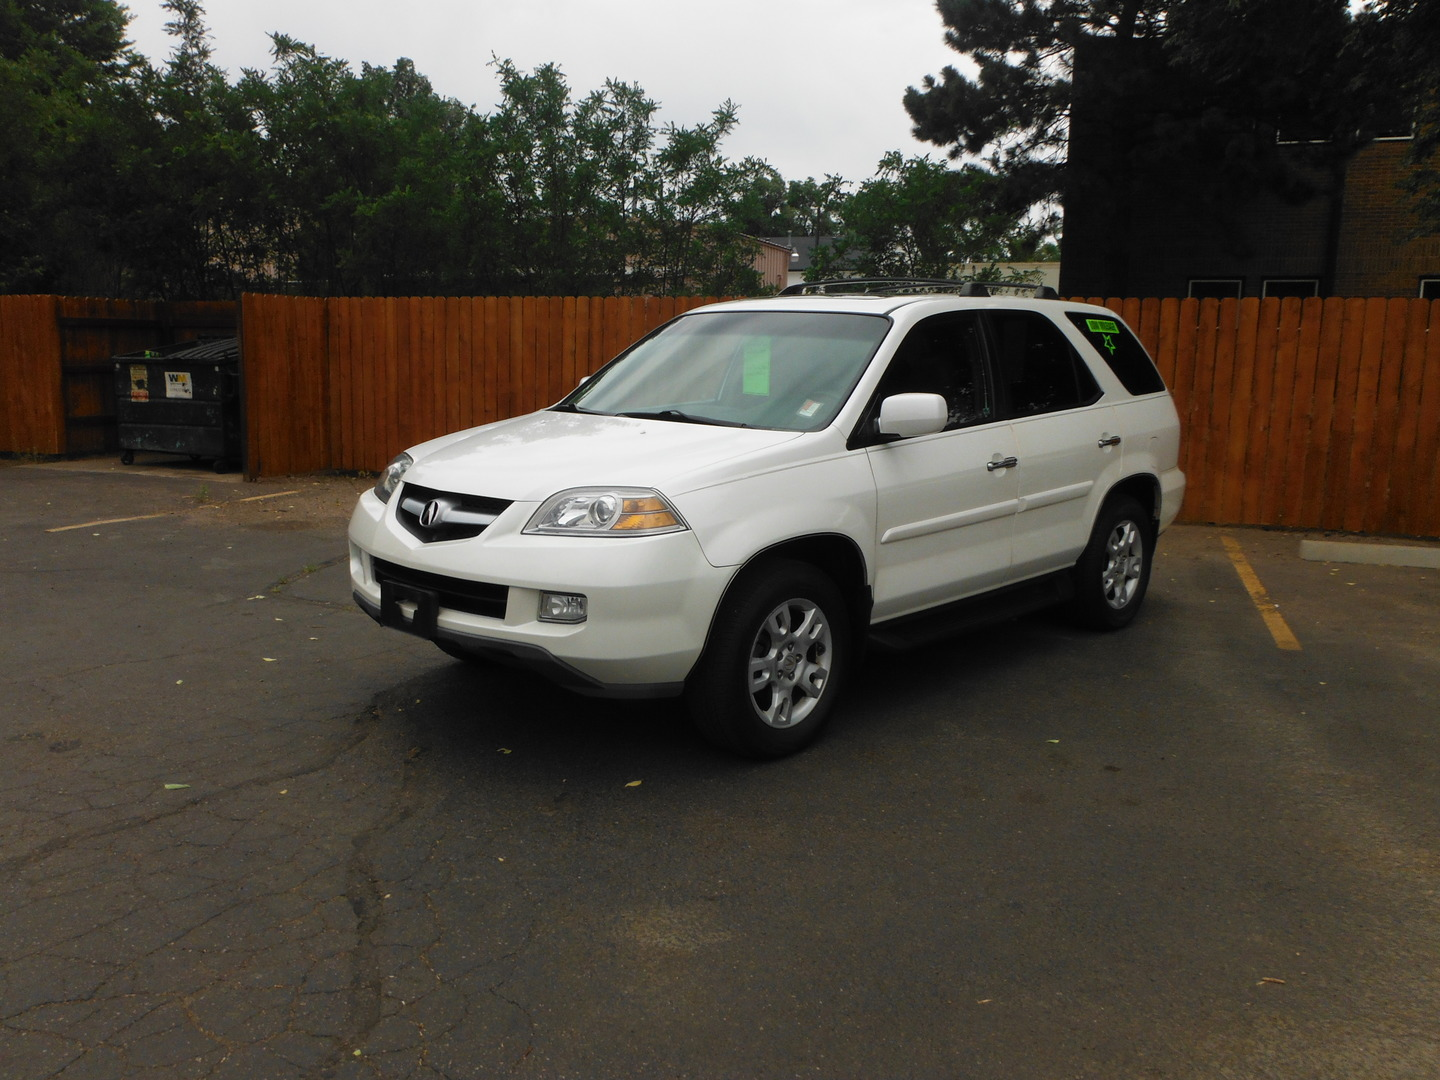 fresh of ga related sales auto image new savannah post greenville mdx for acura used luxury sale